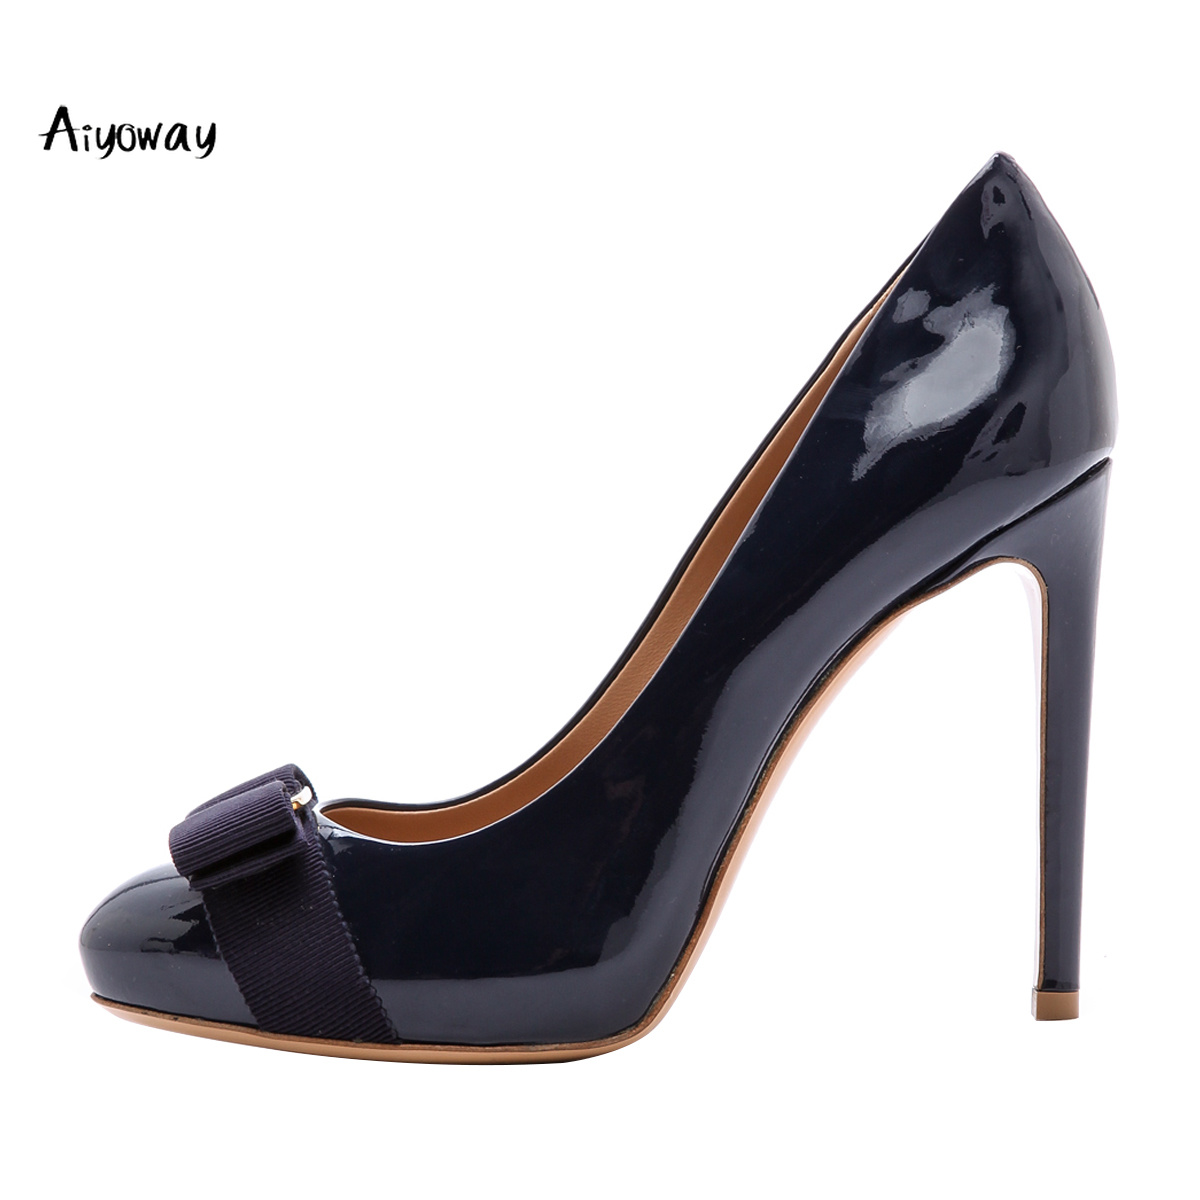 59699888c9d0 Aiyoway Fashion Women Shoes Round Toe High Heels Bow Pumps Slip-on Autumn  Spring Party Shoes Patent Leather Dark Blue Red